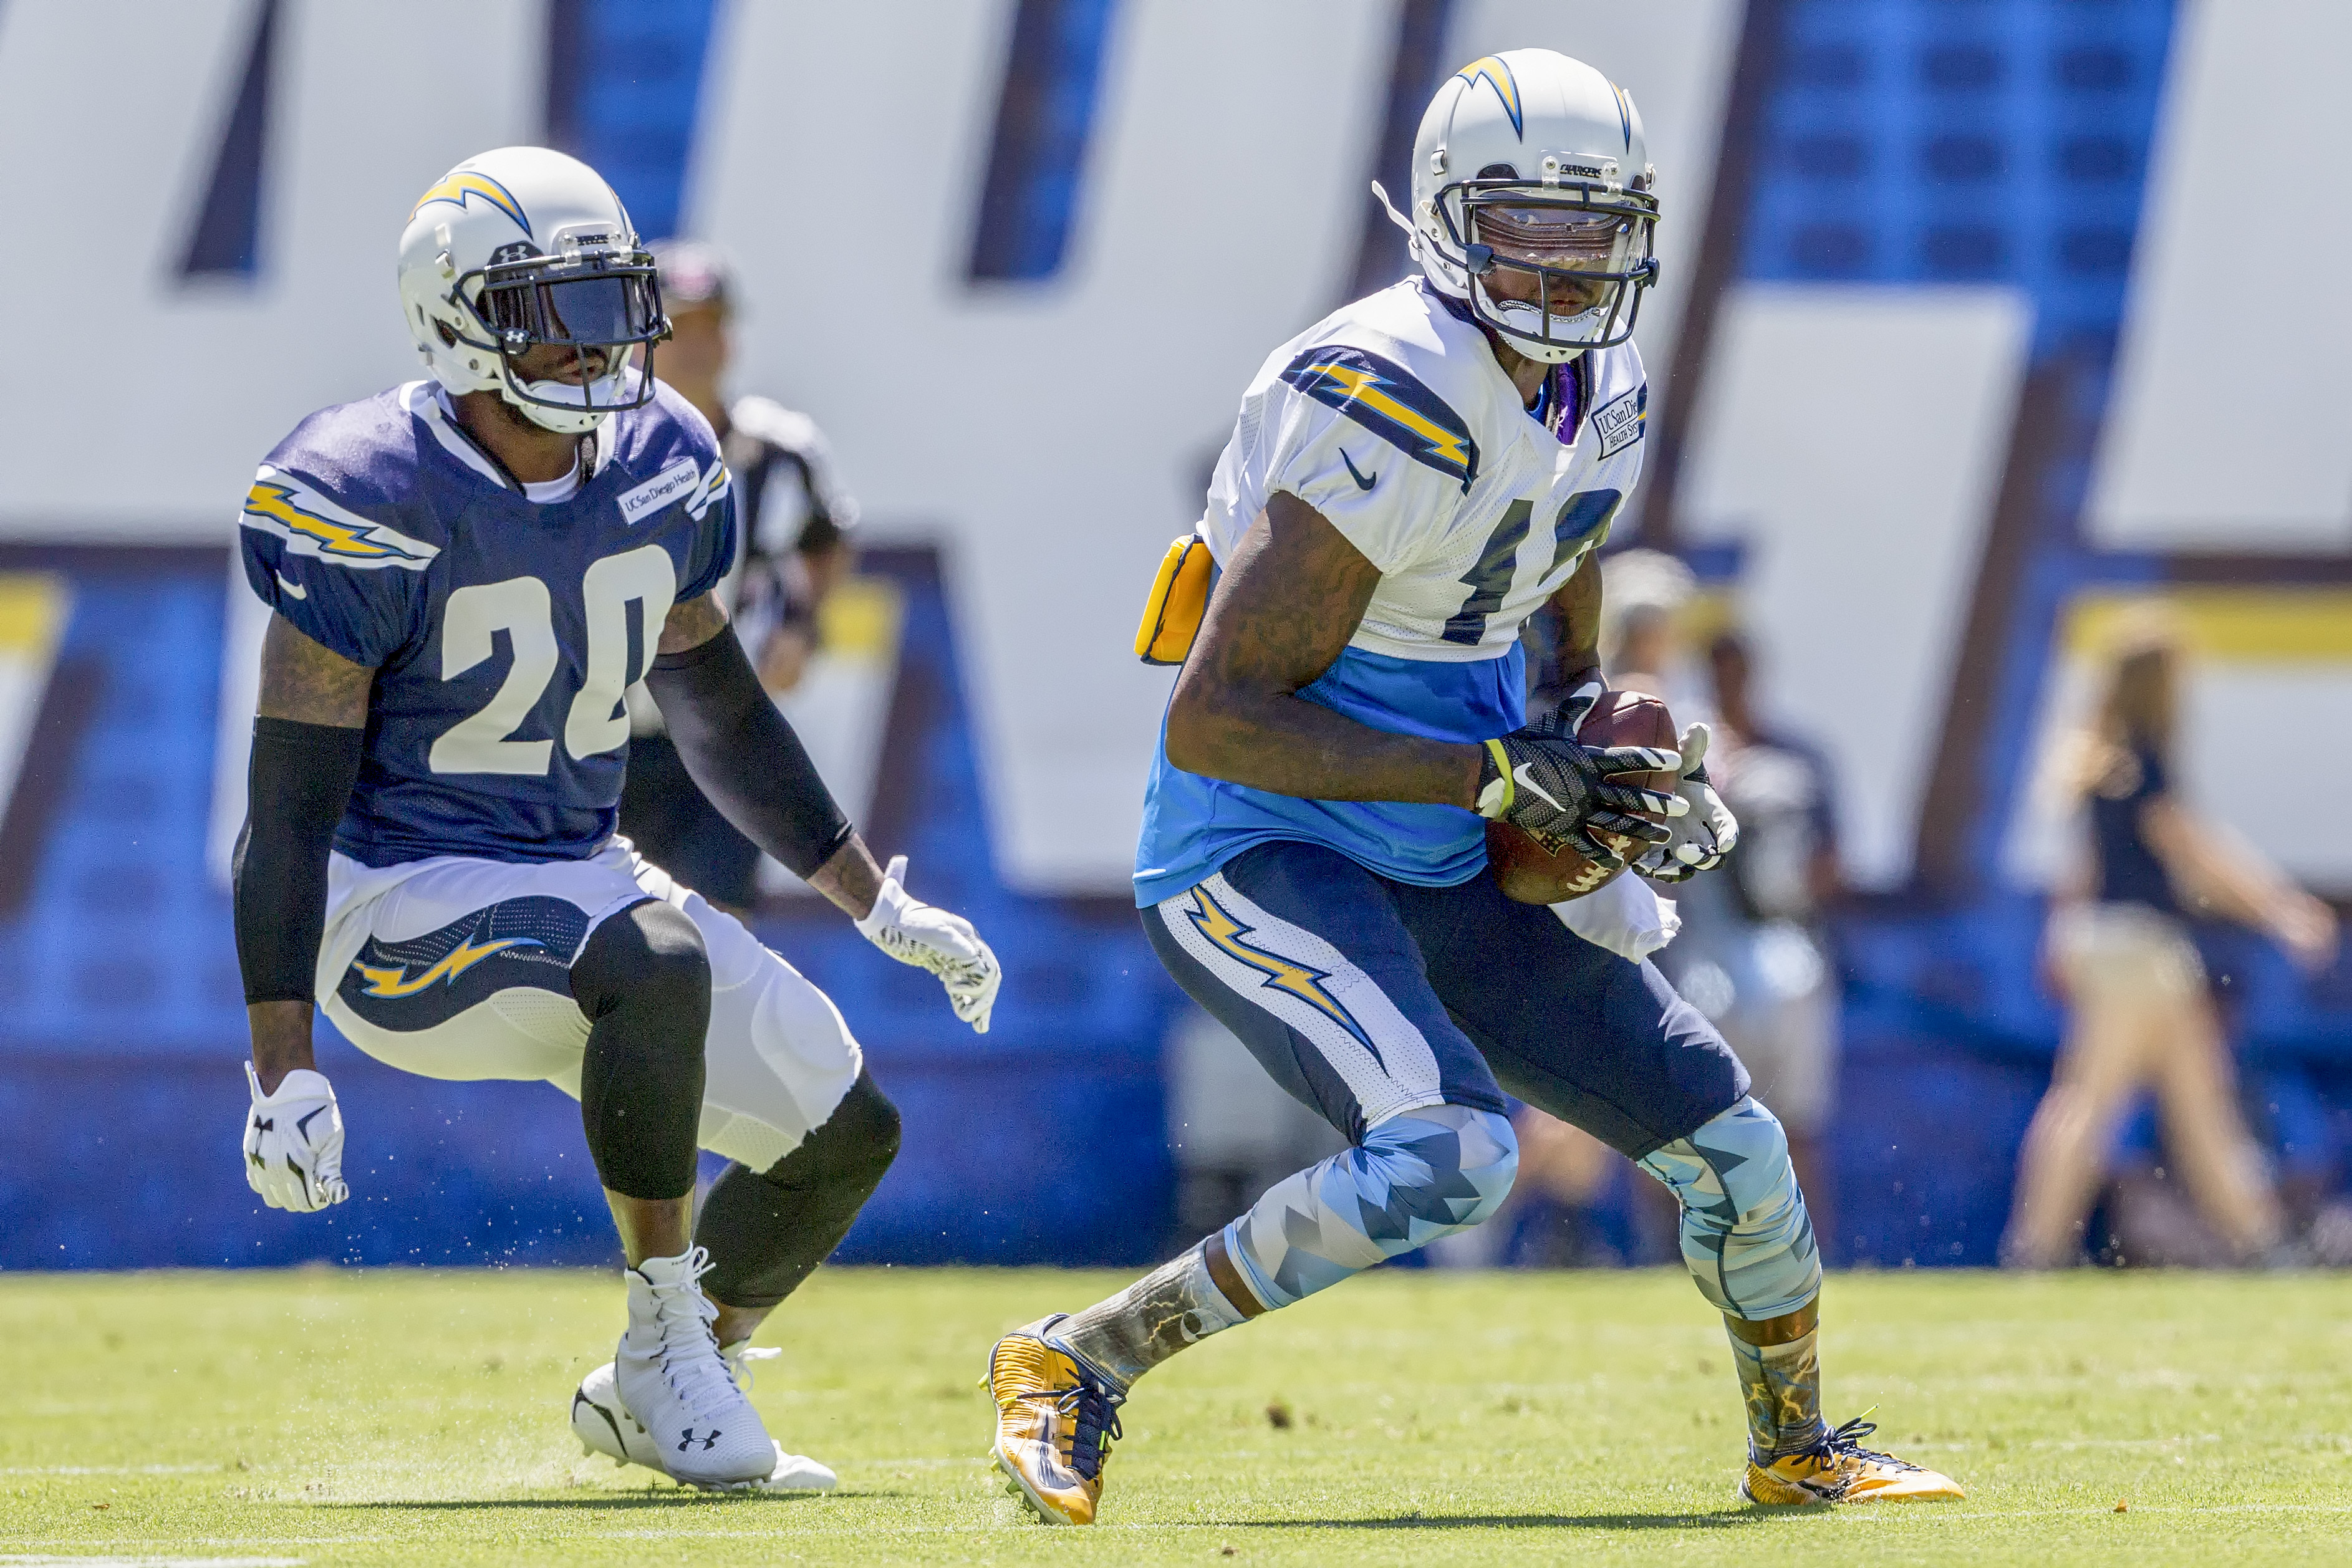 San Diego Chargers wide receiver Jacoby Jones (12) catches a pass in front of cornerback Chris Davis (20) during Fan Fest 2015 held at Qualcomm Stadium. Photo by Bill Reilly